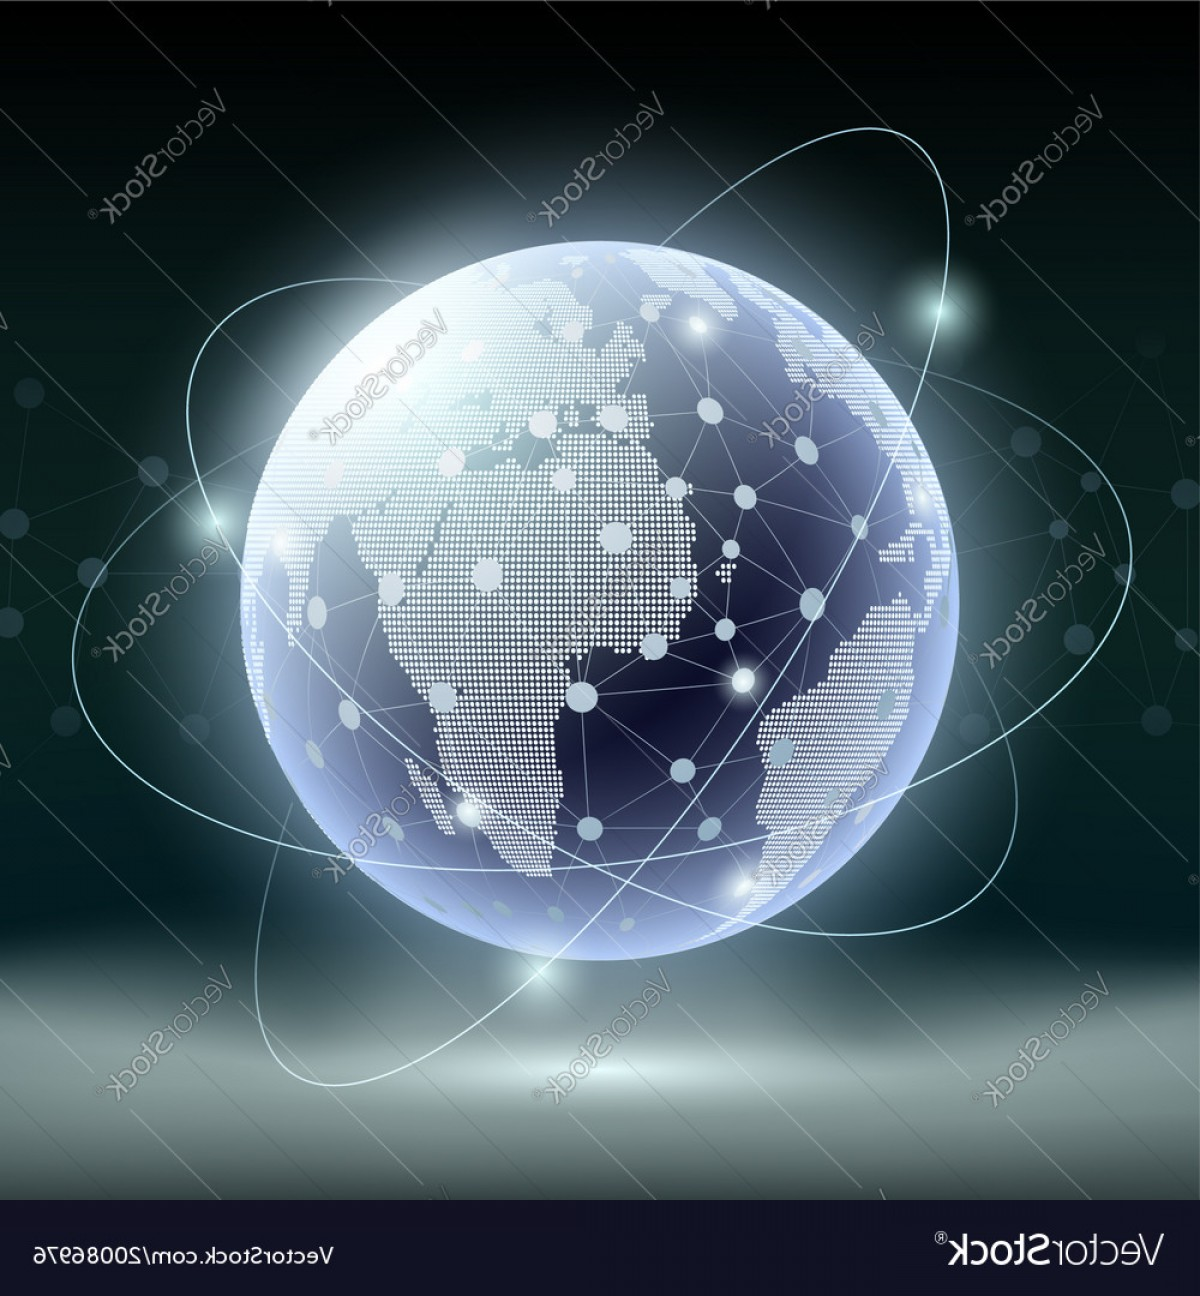 Abstract Vector Art Globe TV: Futuristic Technology Background Planet Earth And Vector